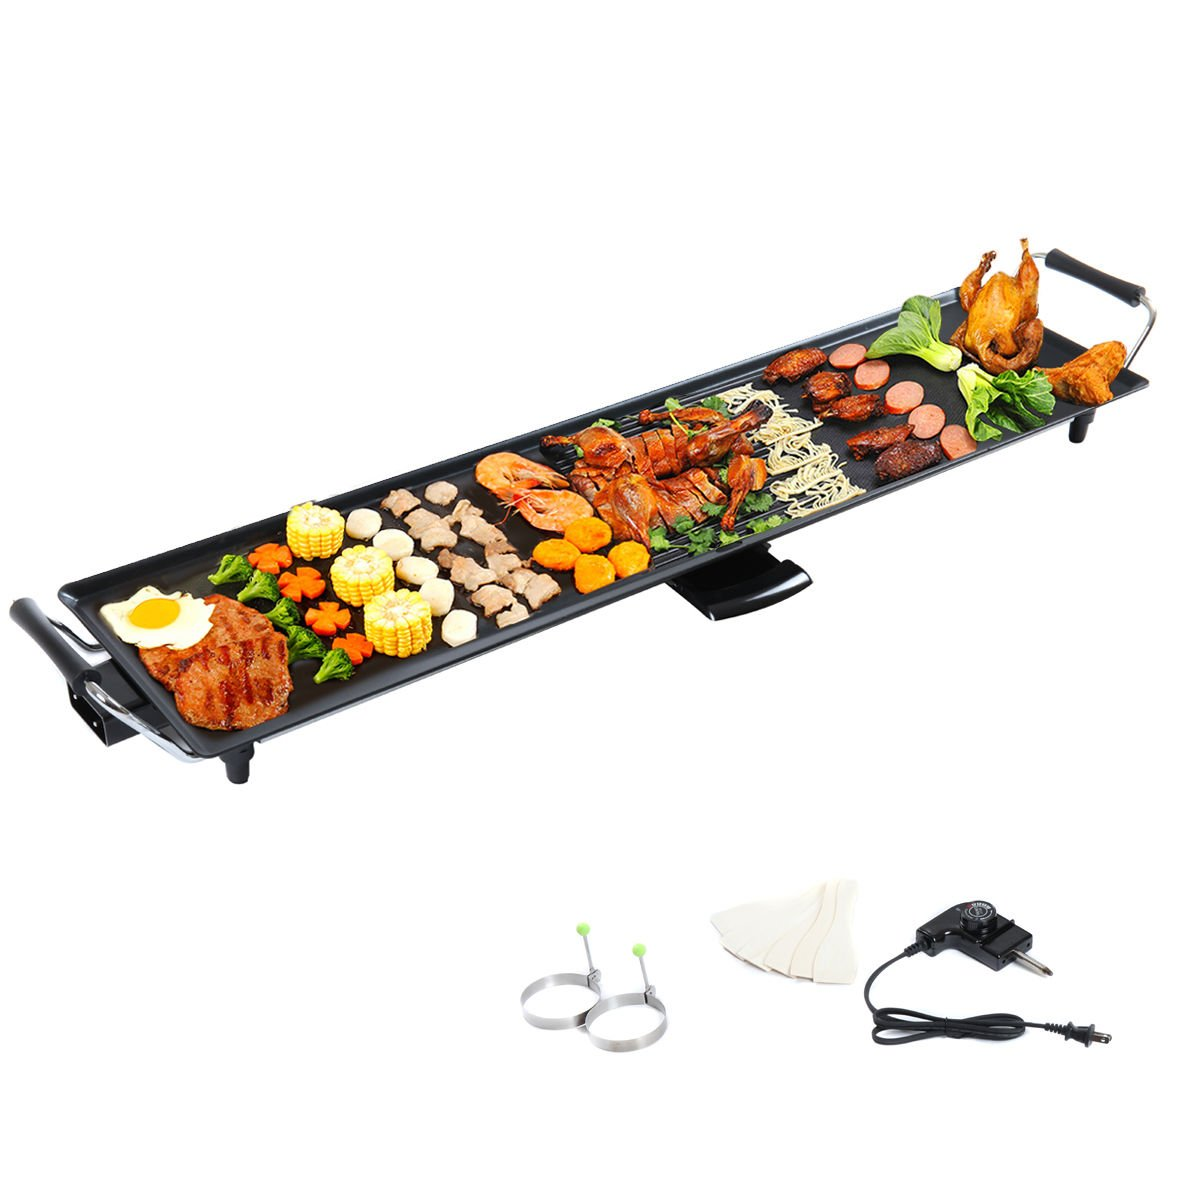 Lotus Analin Grid Electric Teppanyaki Table Top Grill Griddle BBQ Barbecue Plate Camping, Black by Lotus Analin